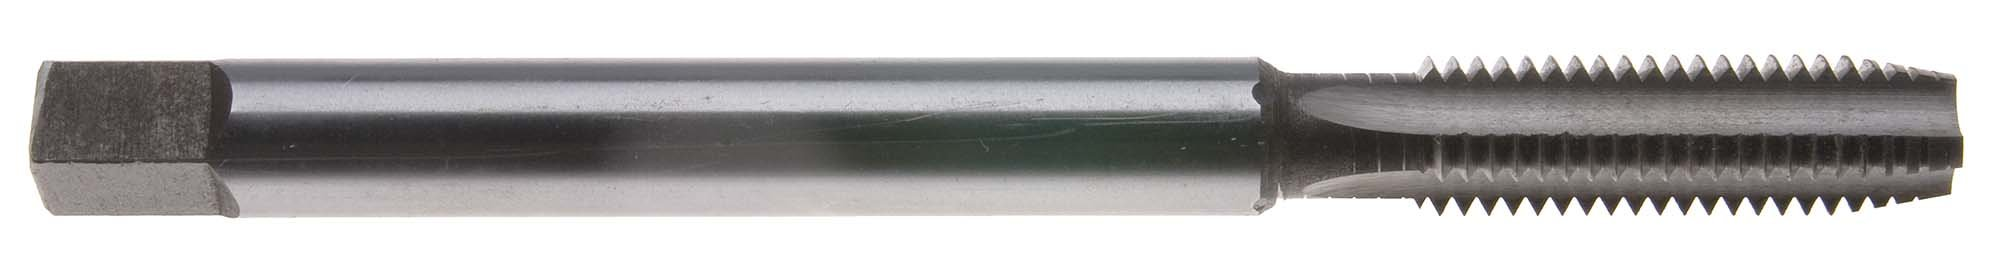 3/4-10 x 10'' Long Plug Style Pulley Tap, High Speed Steel by Taps - Long